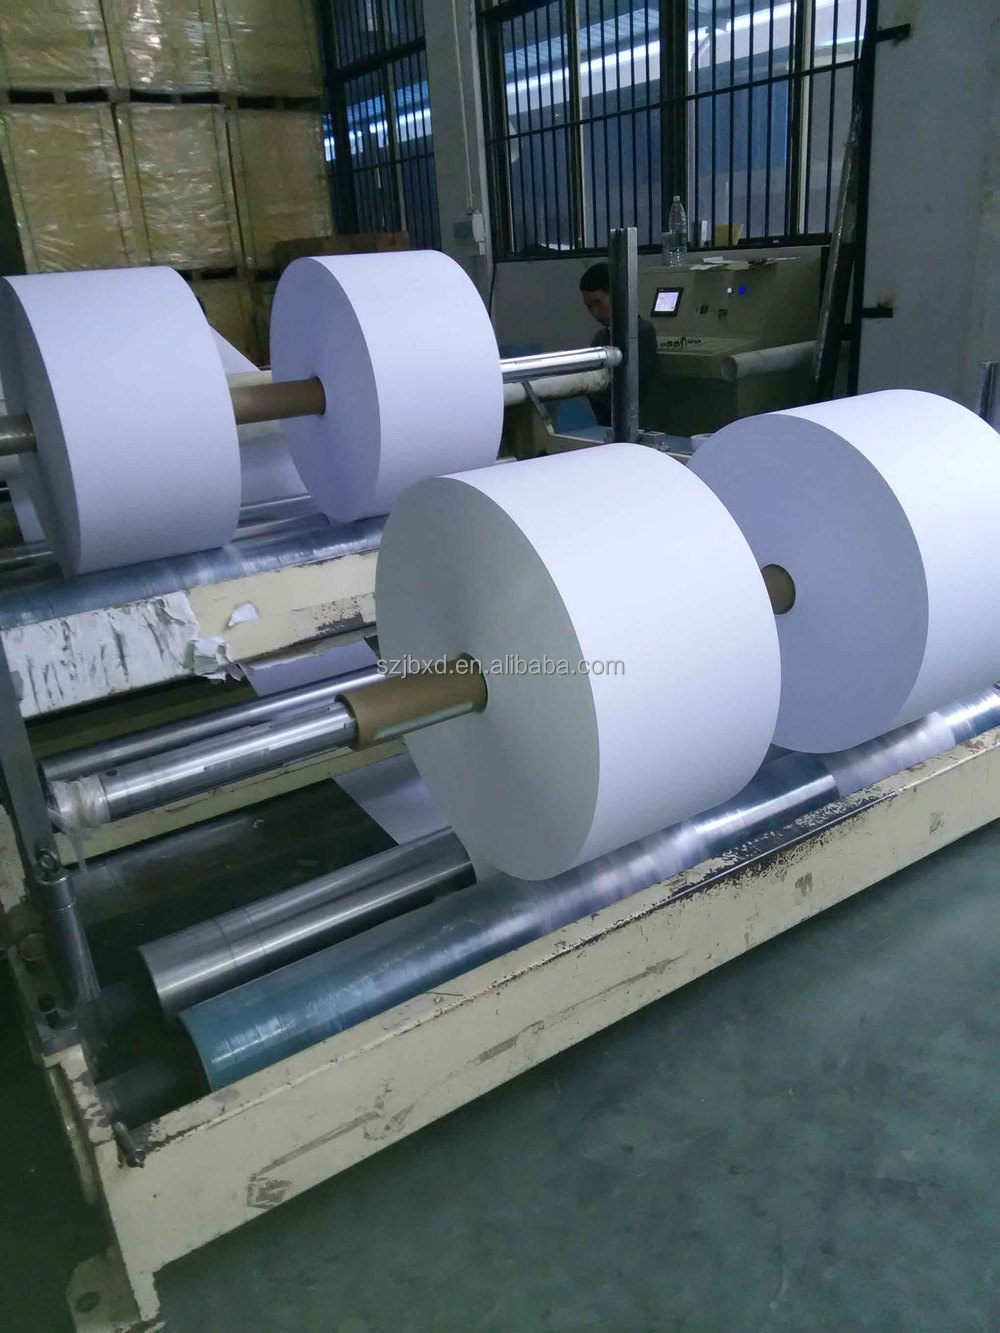 mm thermal paper roll products jumbo roll paper printing 405mm thermal paper roll products jumbo roll paper printing services